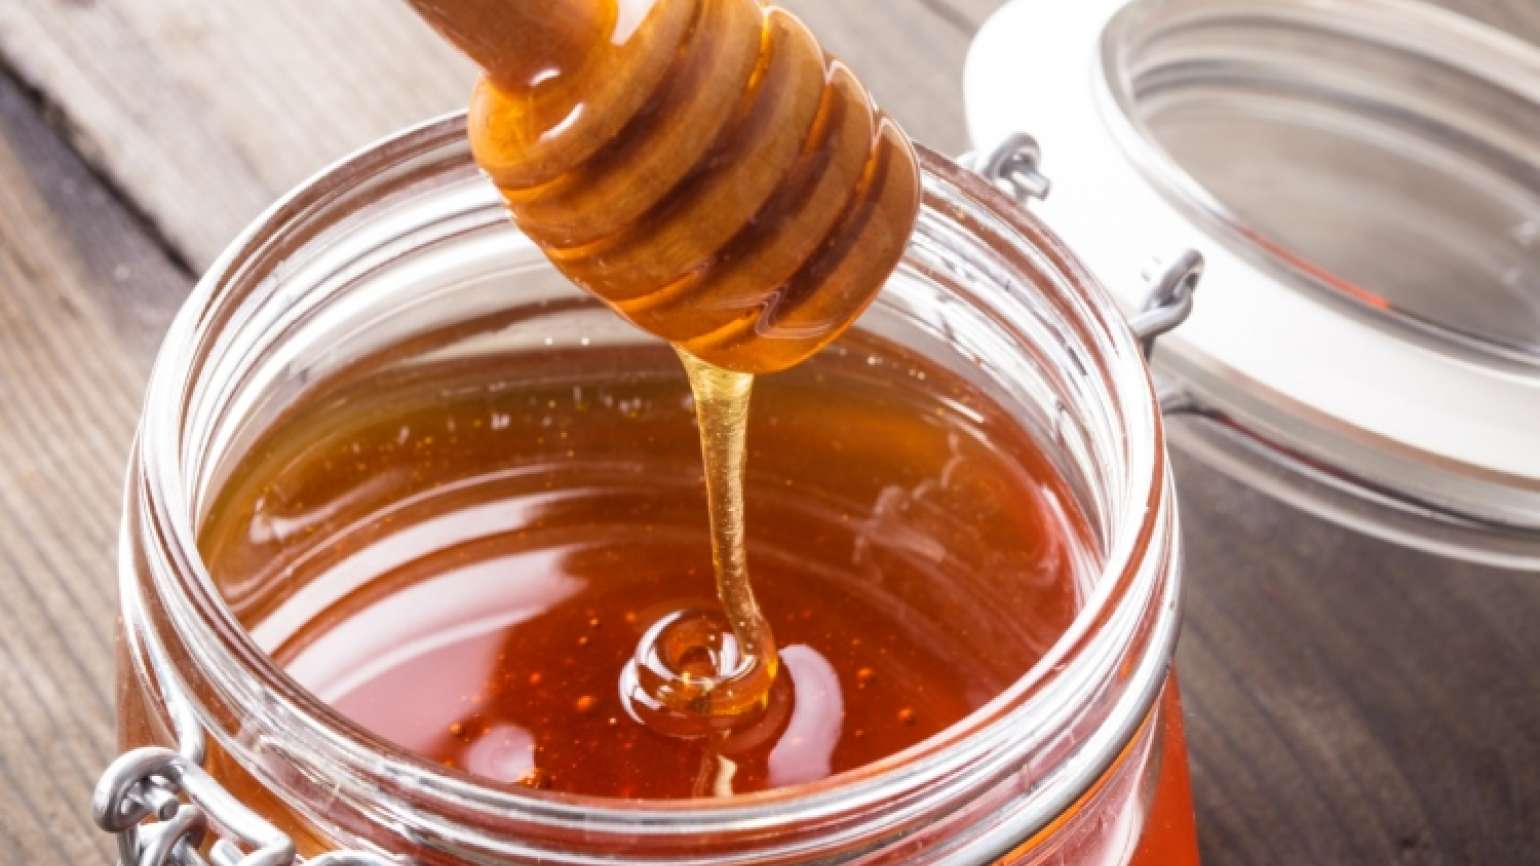 Honey: a sweet symbol of God's blessings